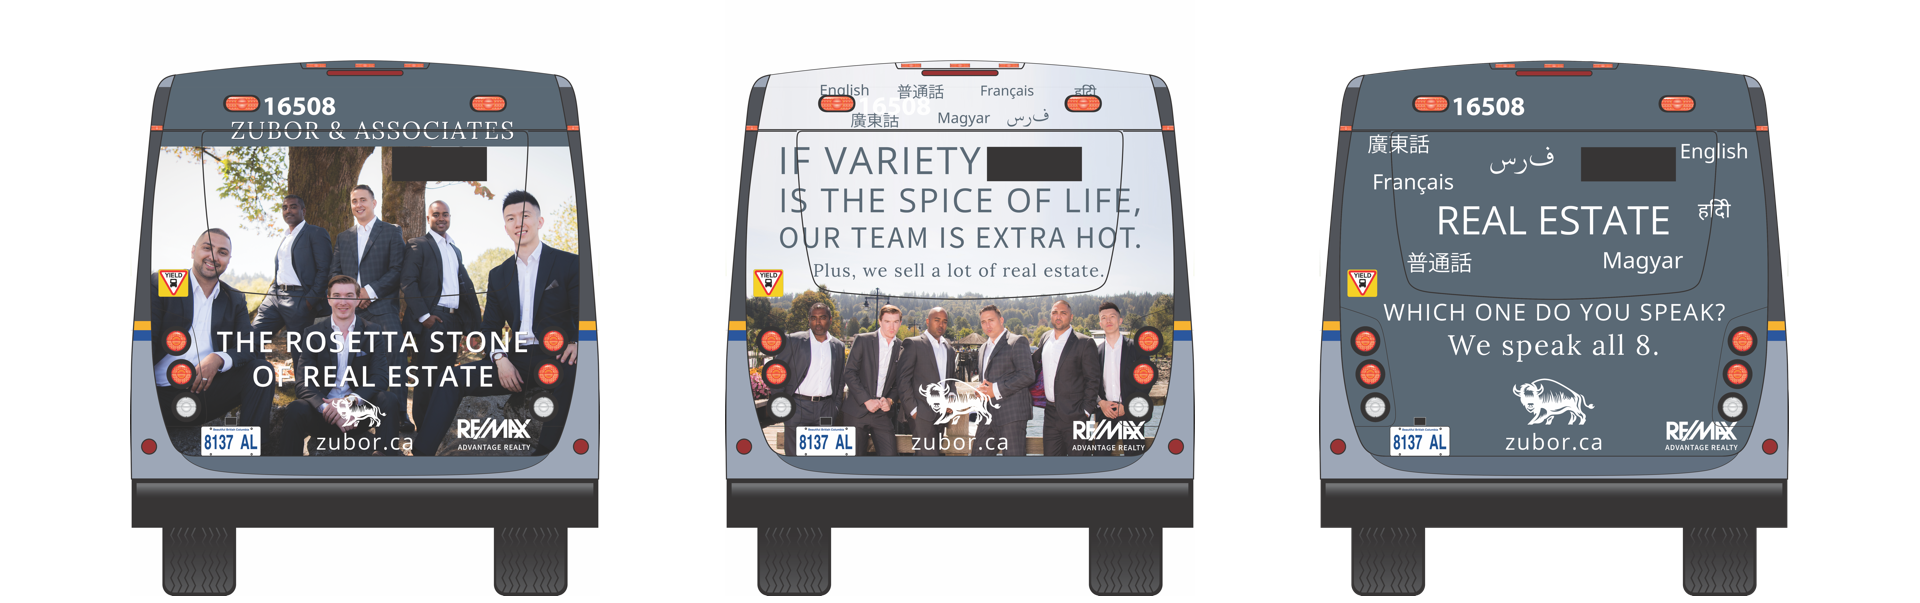 Zubor & Associates Real Estate bus ad design